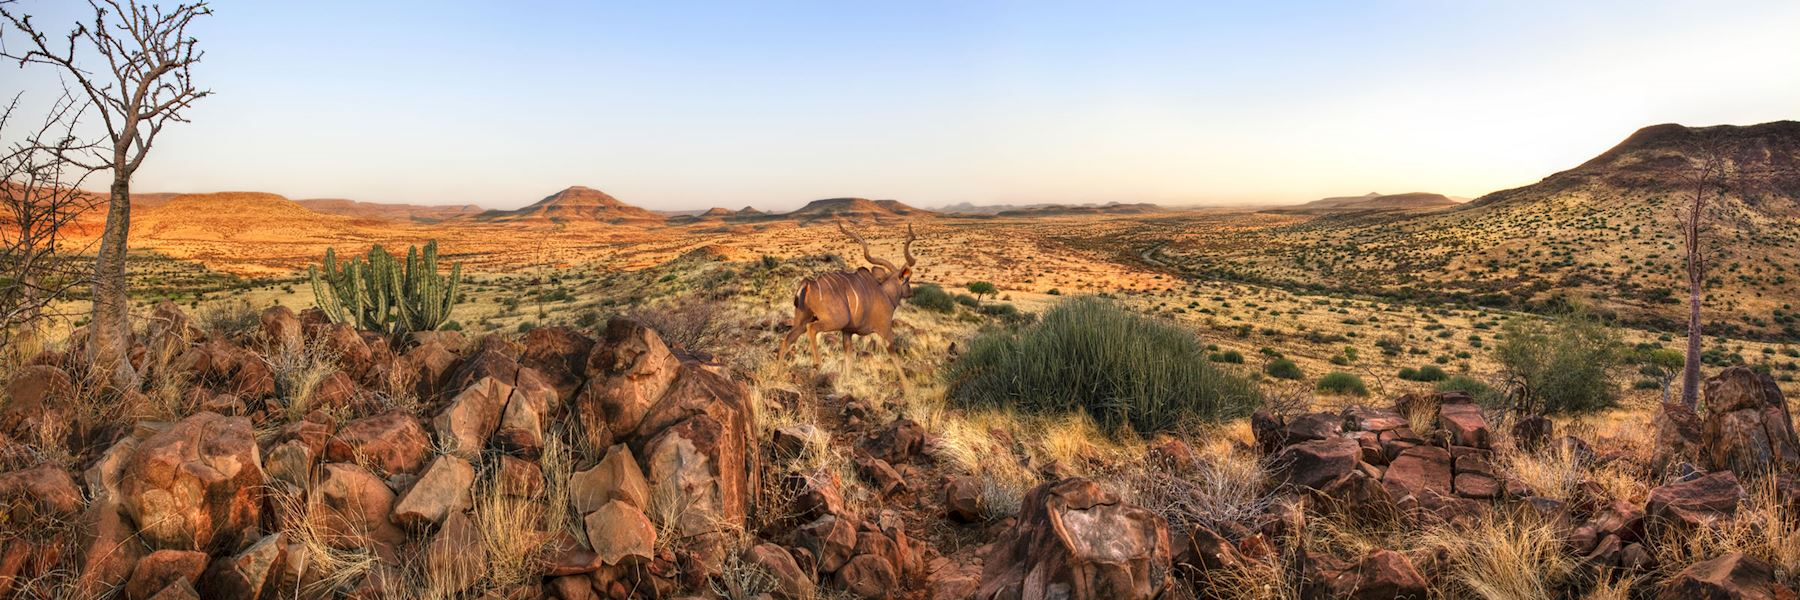 When is the best time to visit Namibia?